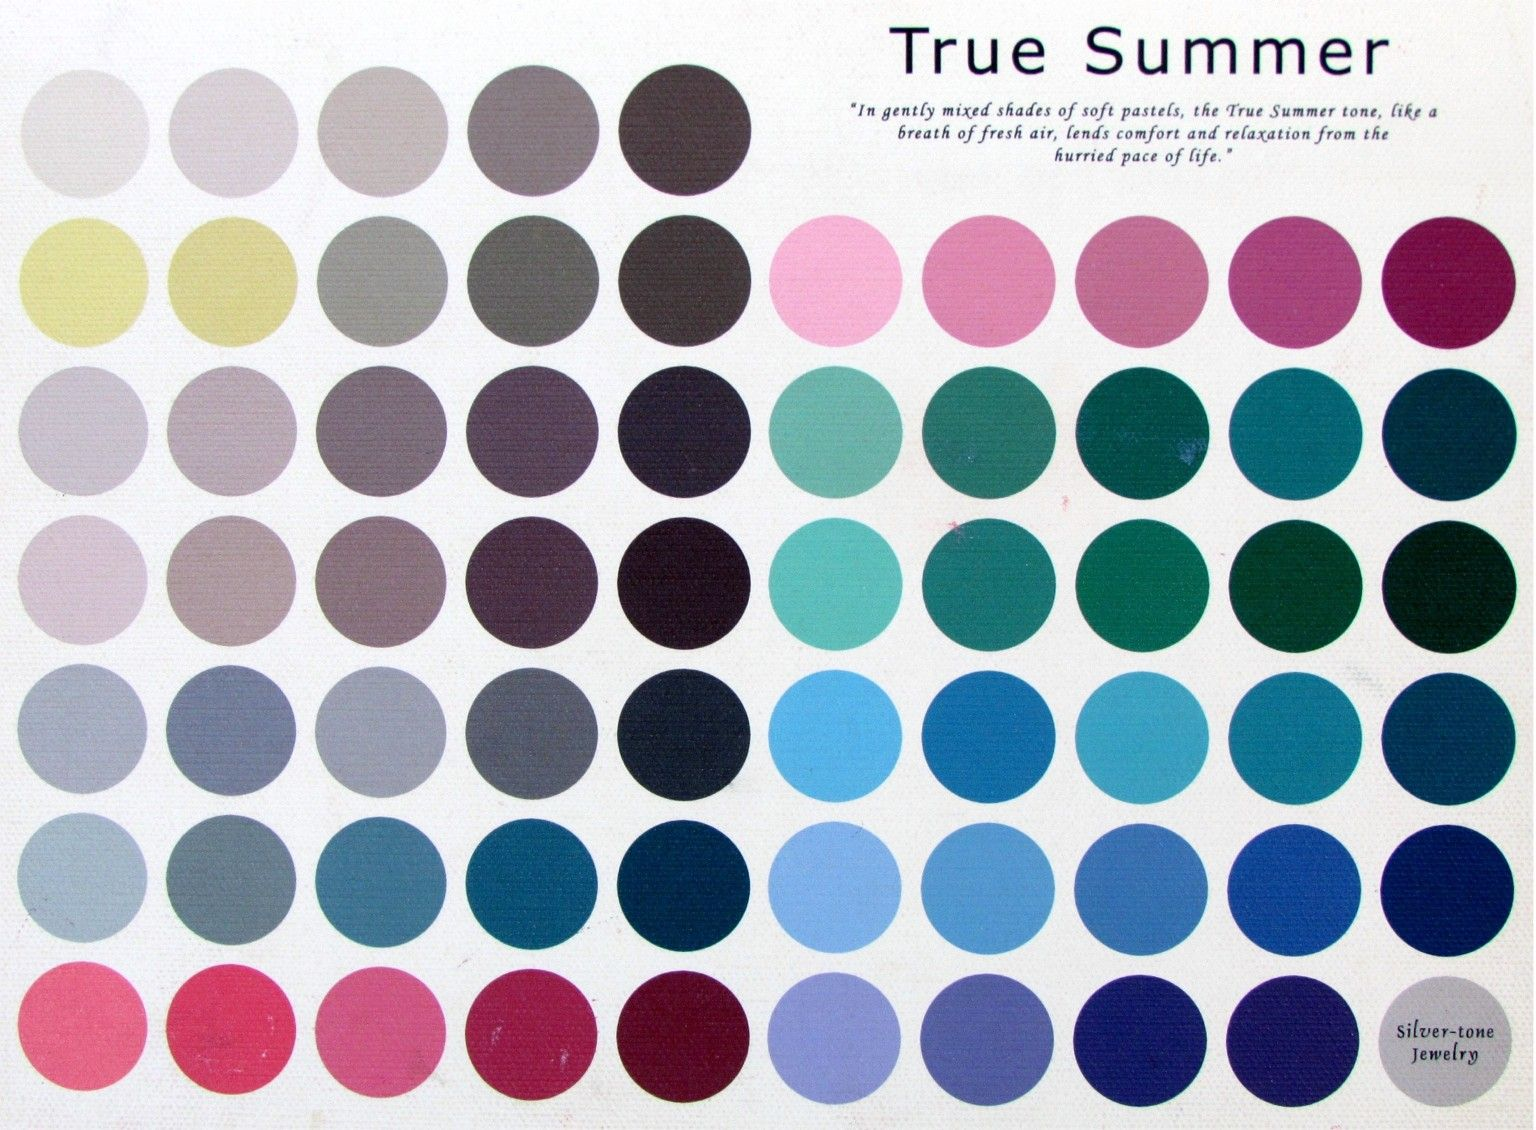 The True Summer Color Palette~ colors may vary slightly from the original  due to the translation from the canvas to your computer screen.